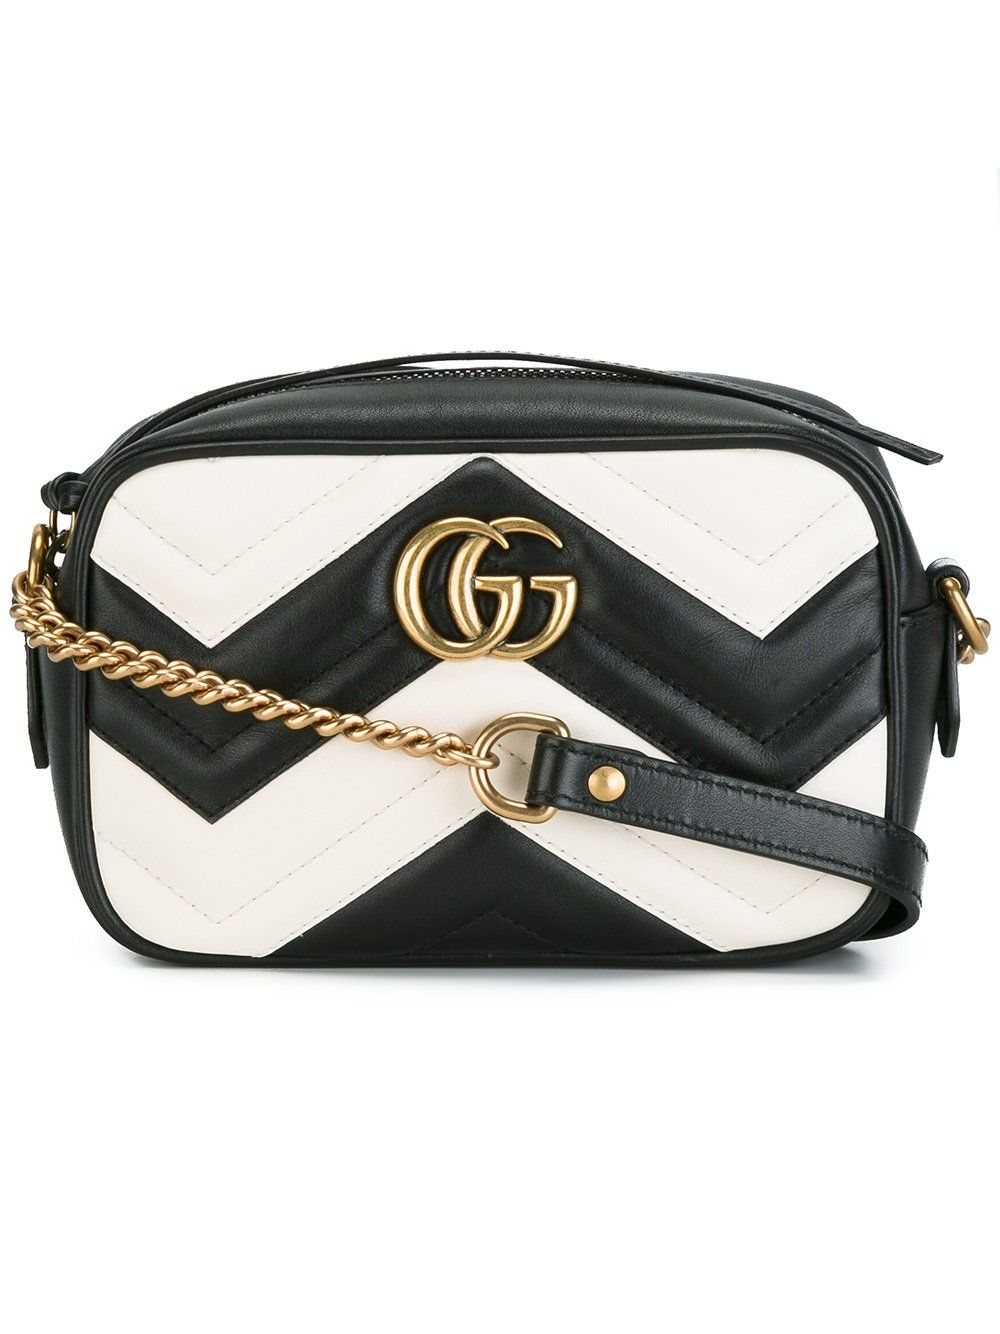 aee1b6d76d83 Gucci GG Marmont matelassé mini bag - Sale! Up to 75% OFF! Shop at Stylizio  for women's and men's designer handbags, luxury sunglasses, watches,  jewelry, ...